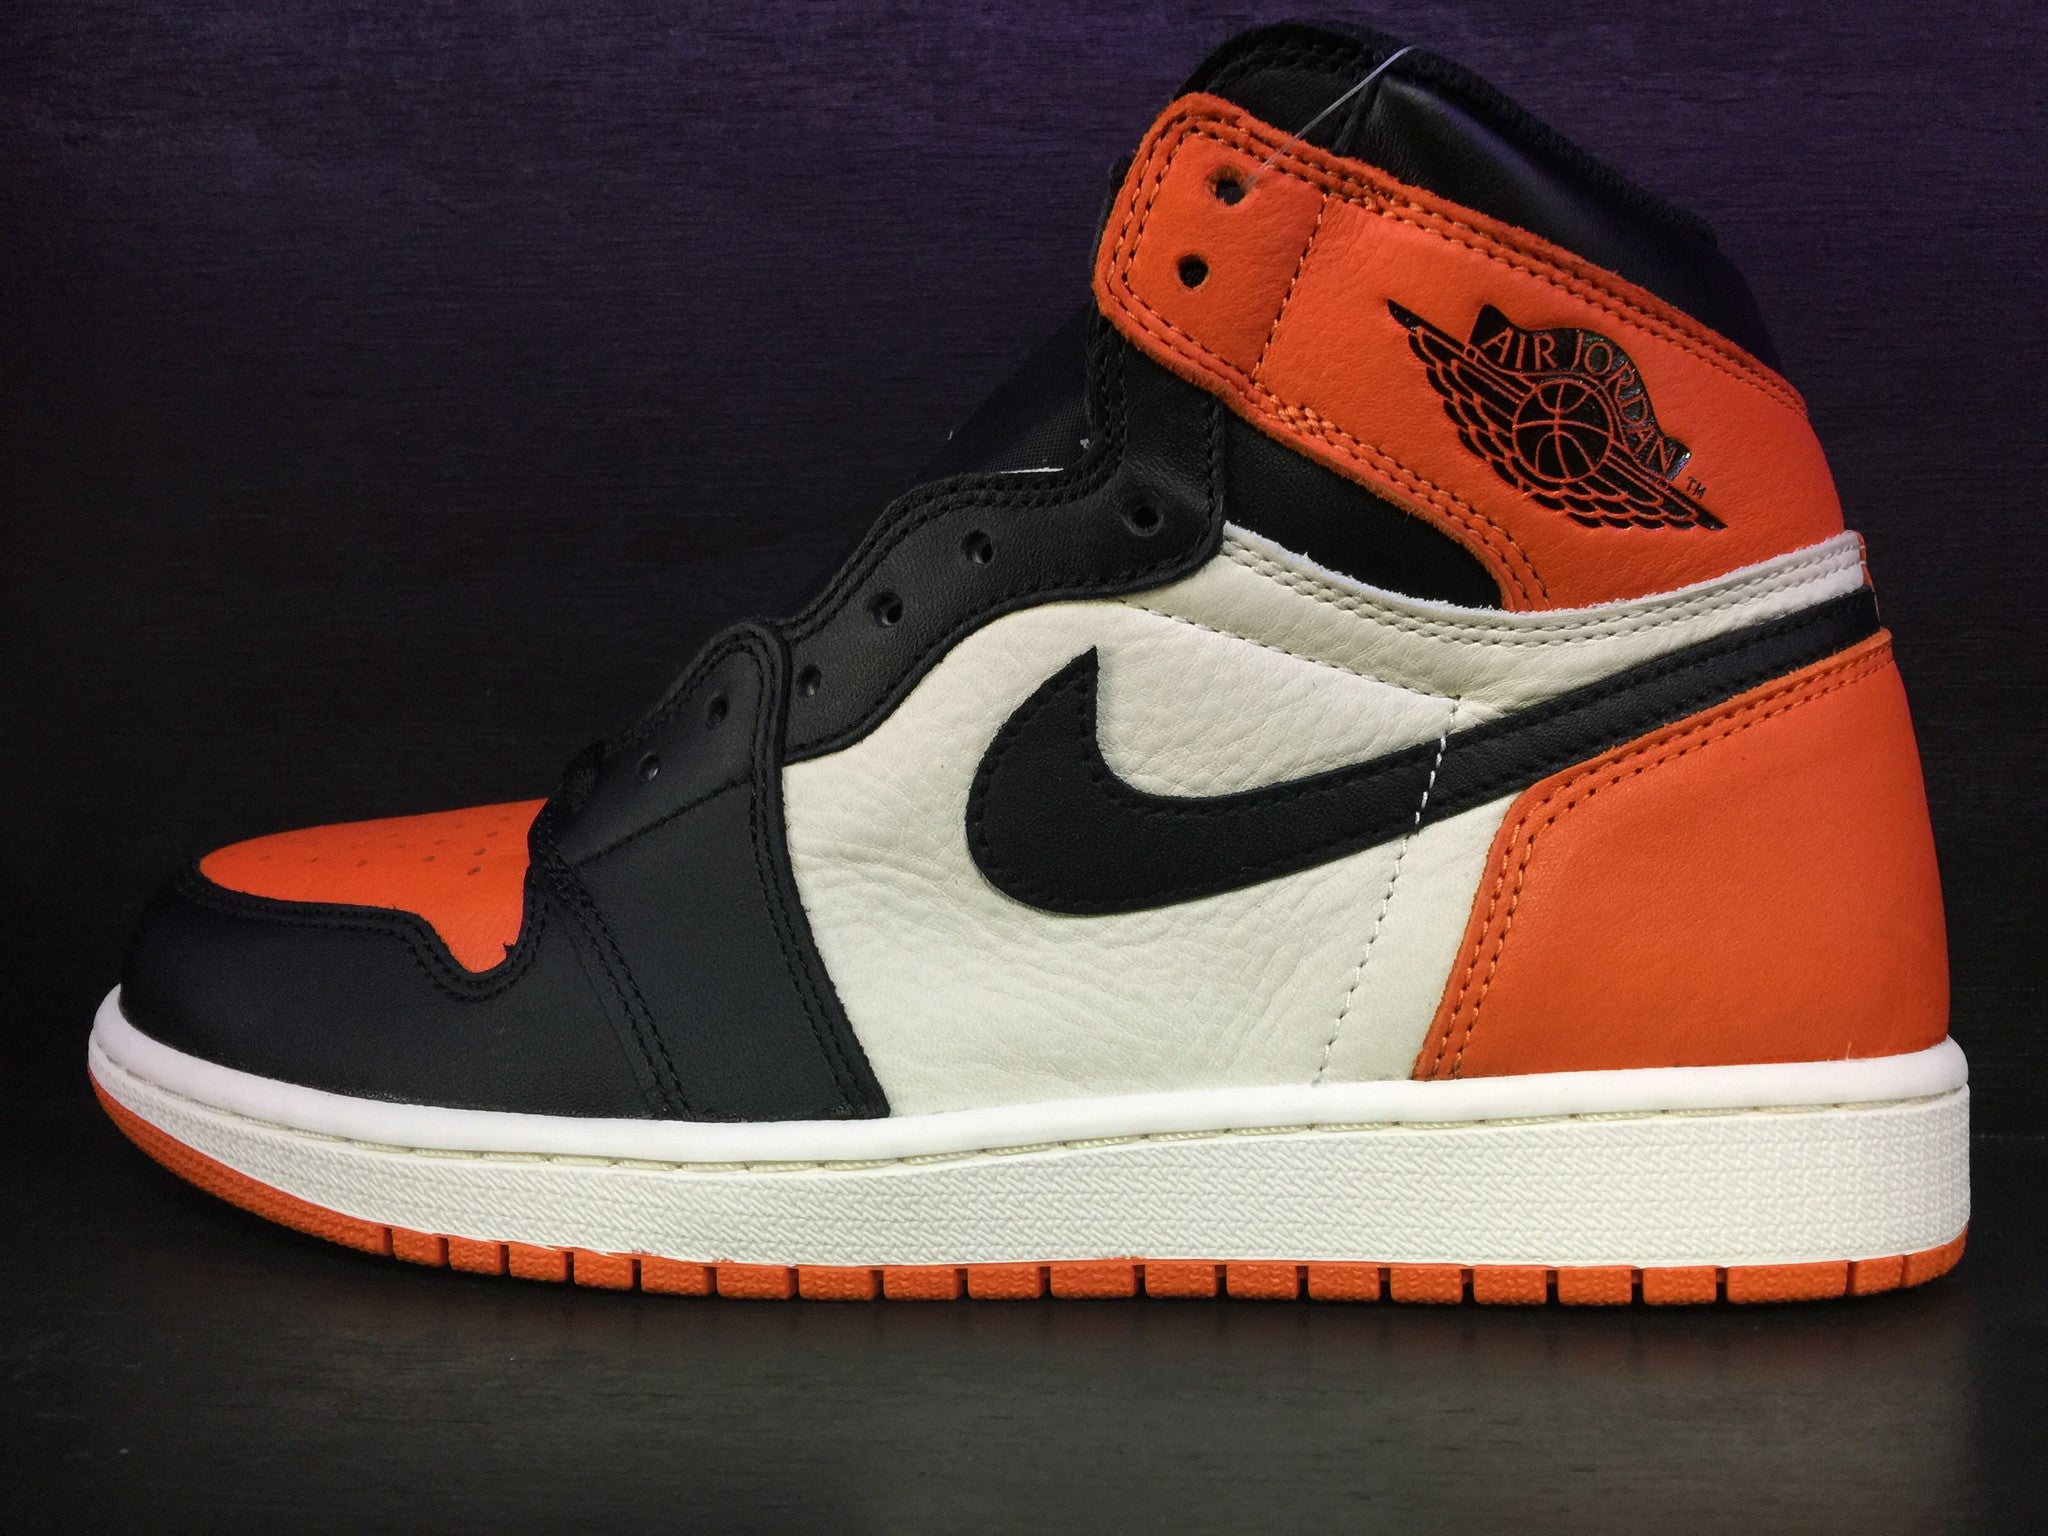 Air Jordan 1 Retro High OG 'Shattered Backboards'